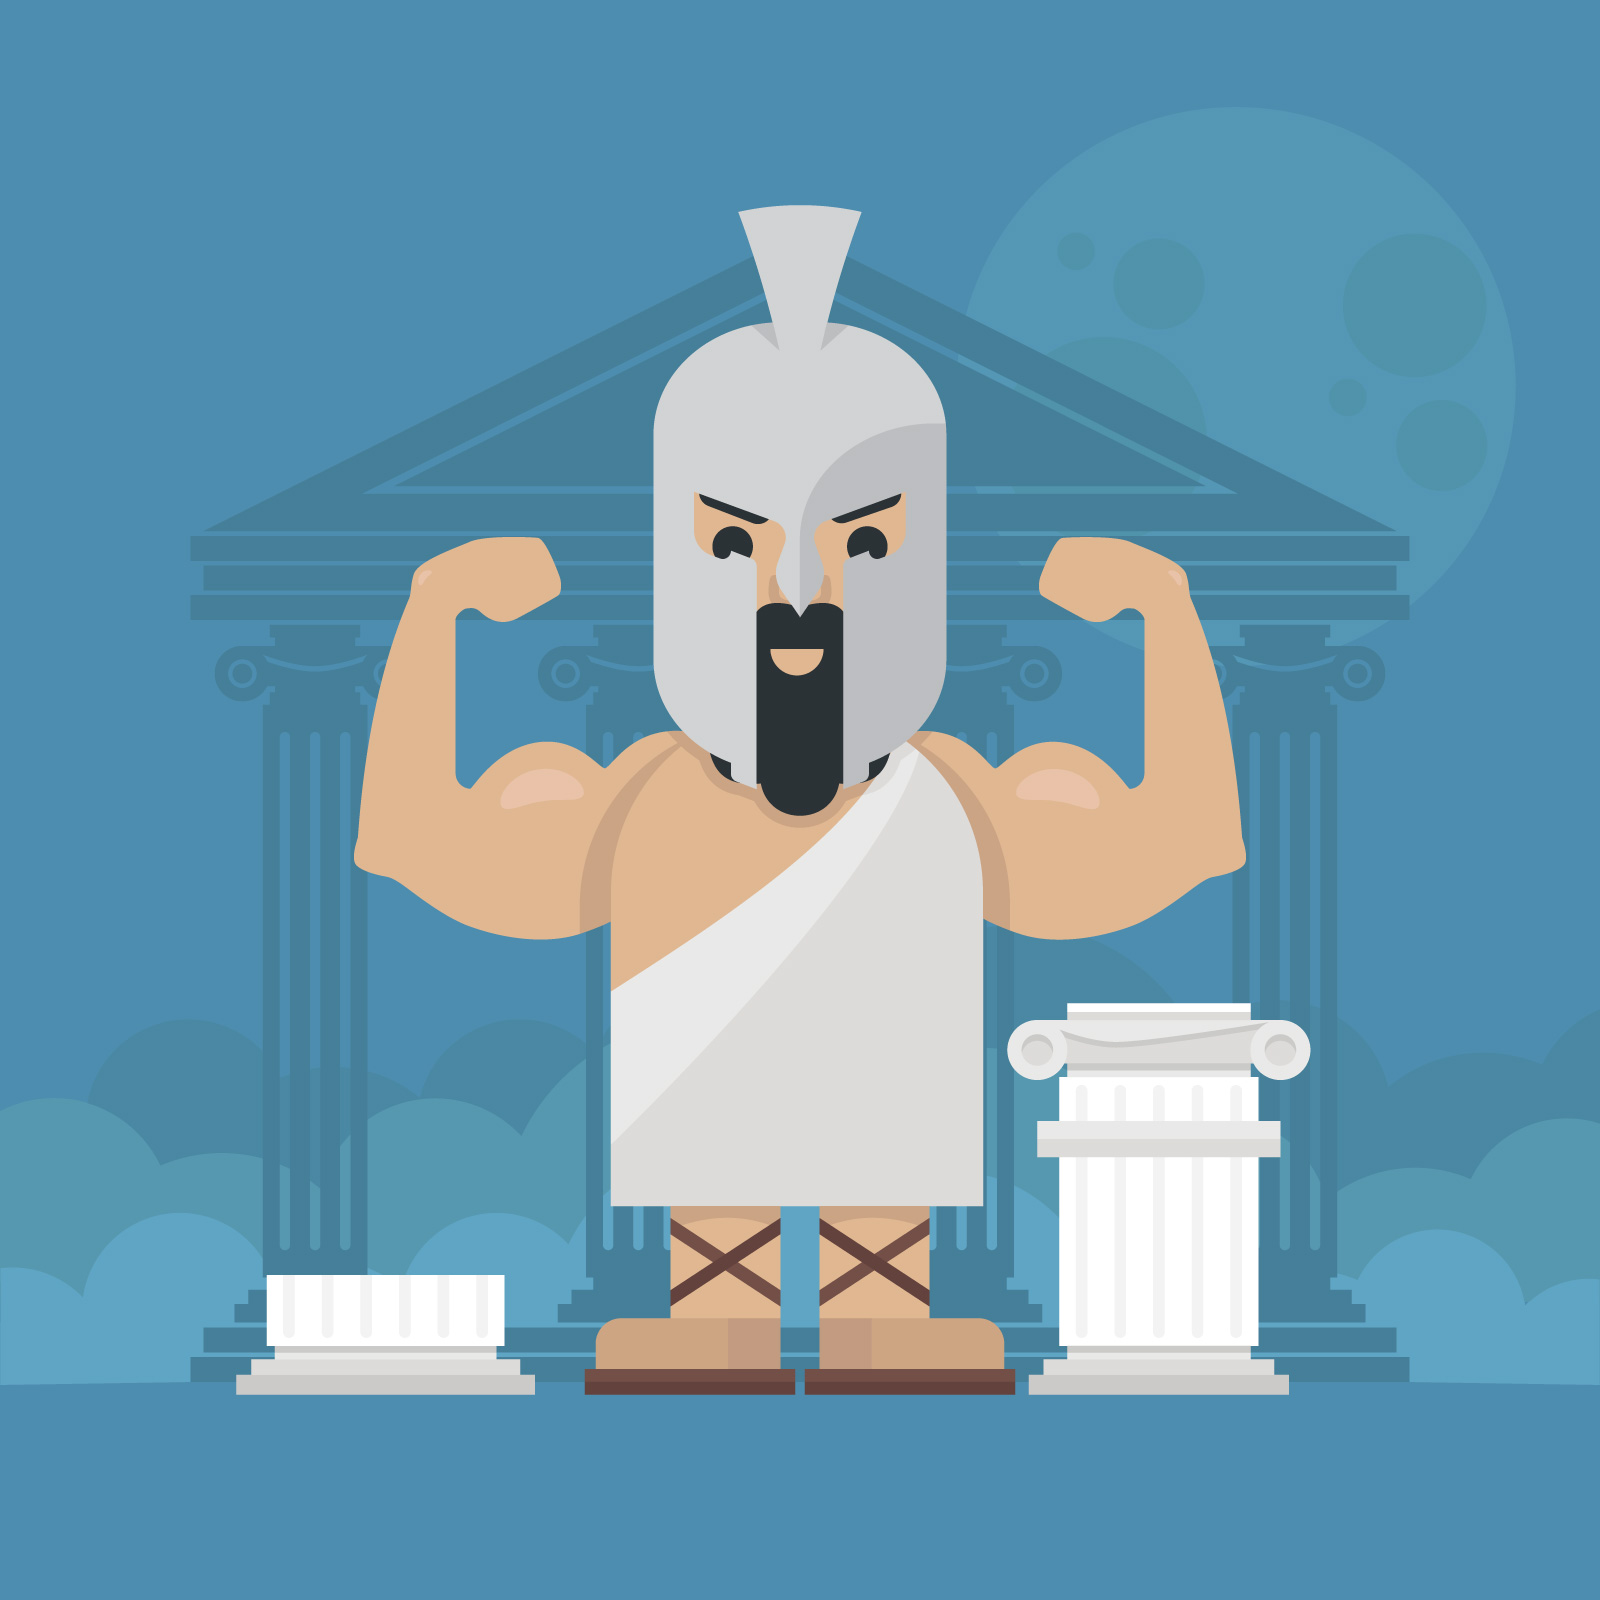 Hercules Mythology Character Illustration  Download Free. Science Advances Signs. First Stage Signs. Community Acquired Pneumonia Signs. Behaviour Management Signs. Alzheimer's Signs. Cats Signs Of Stroke. Doctor Who Star Signs Of Stroke. Equipment Signs Of Stroke